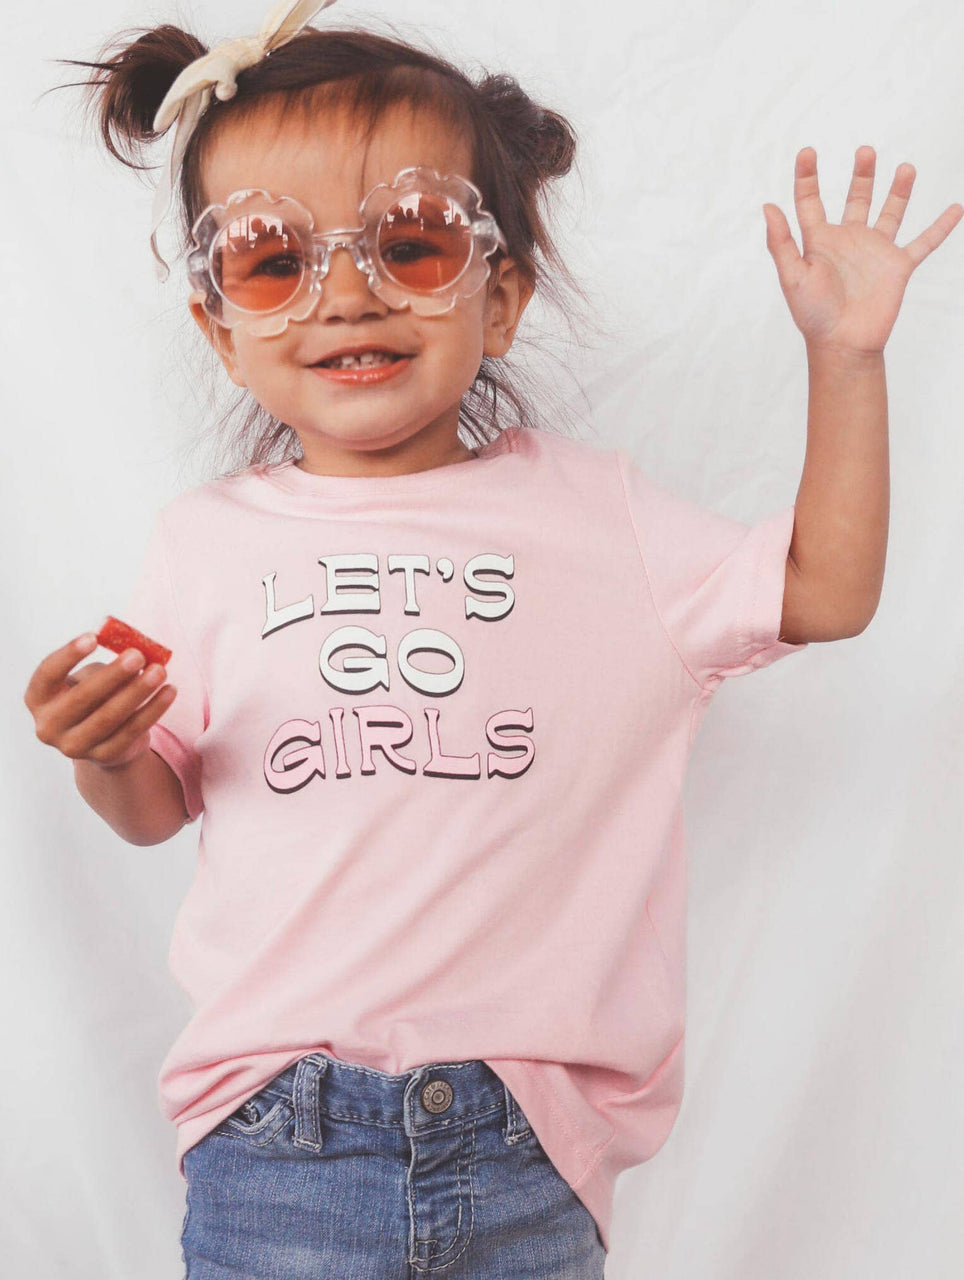 Let's Go Girls Toddler Tee